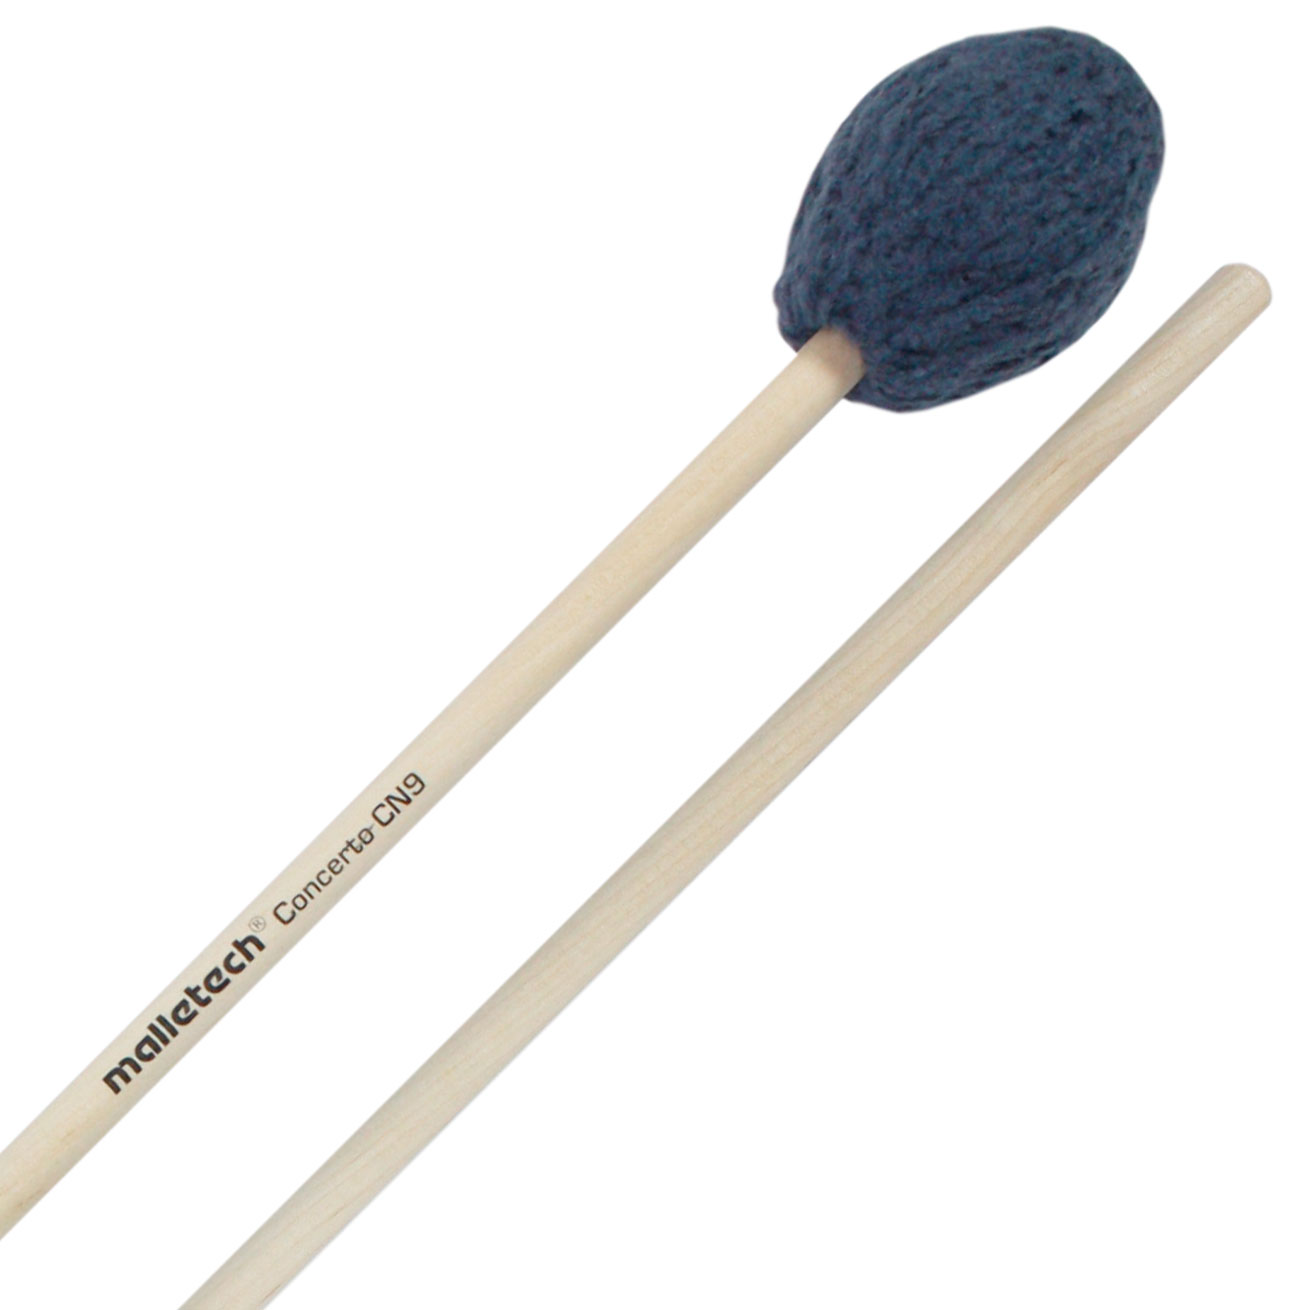 Malletech Concerto Series Medium Marimba Mallets with Birch Handles